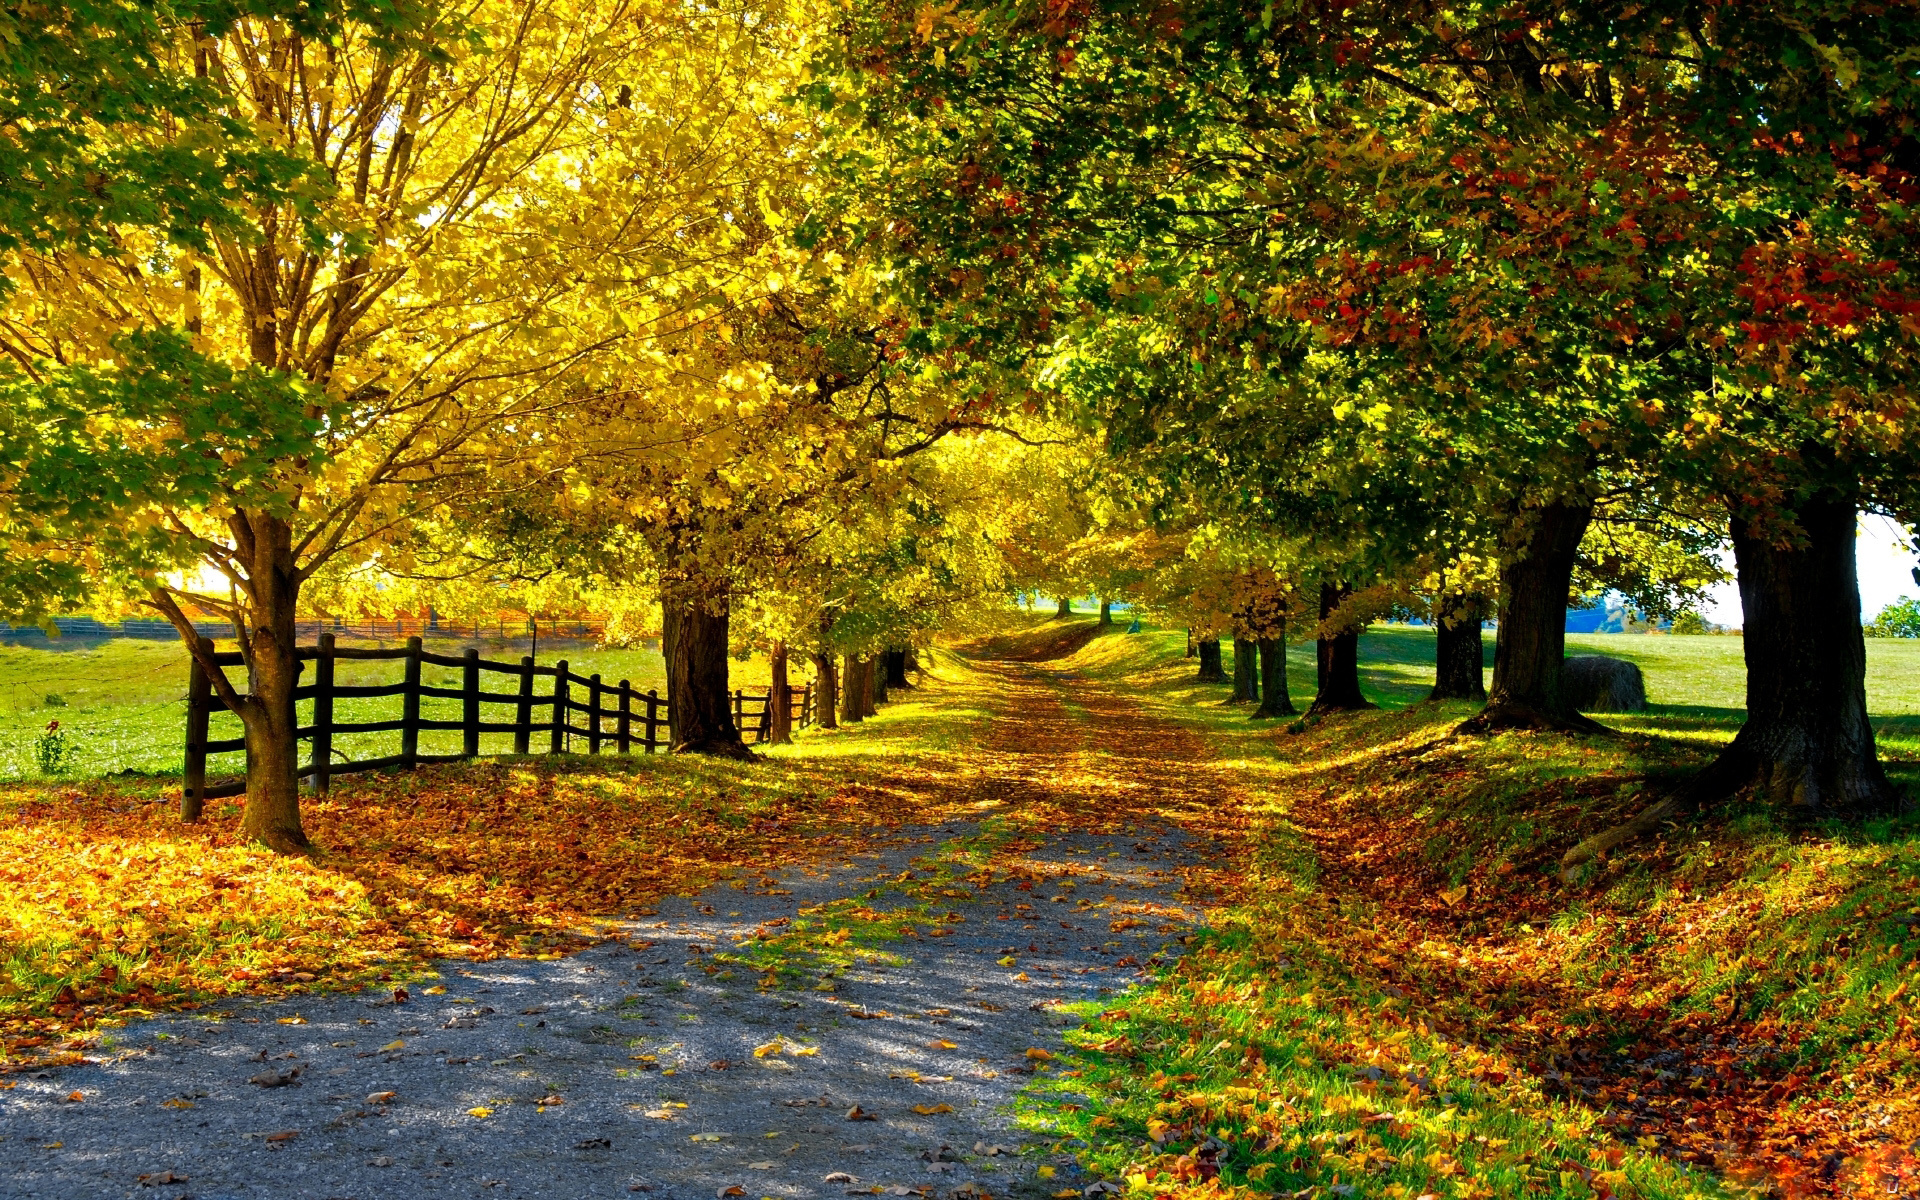 autumn wallpaper for desktop 2013 2014 itsmyideas